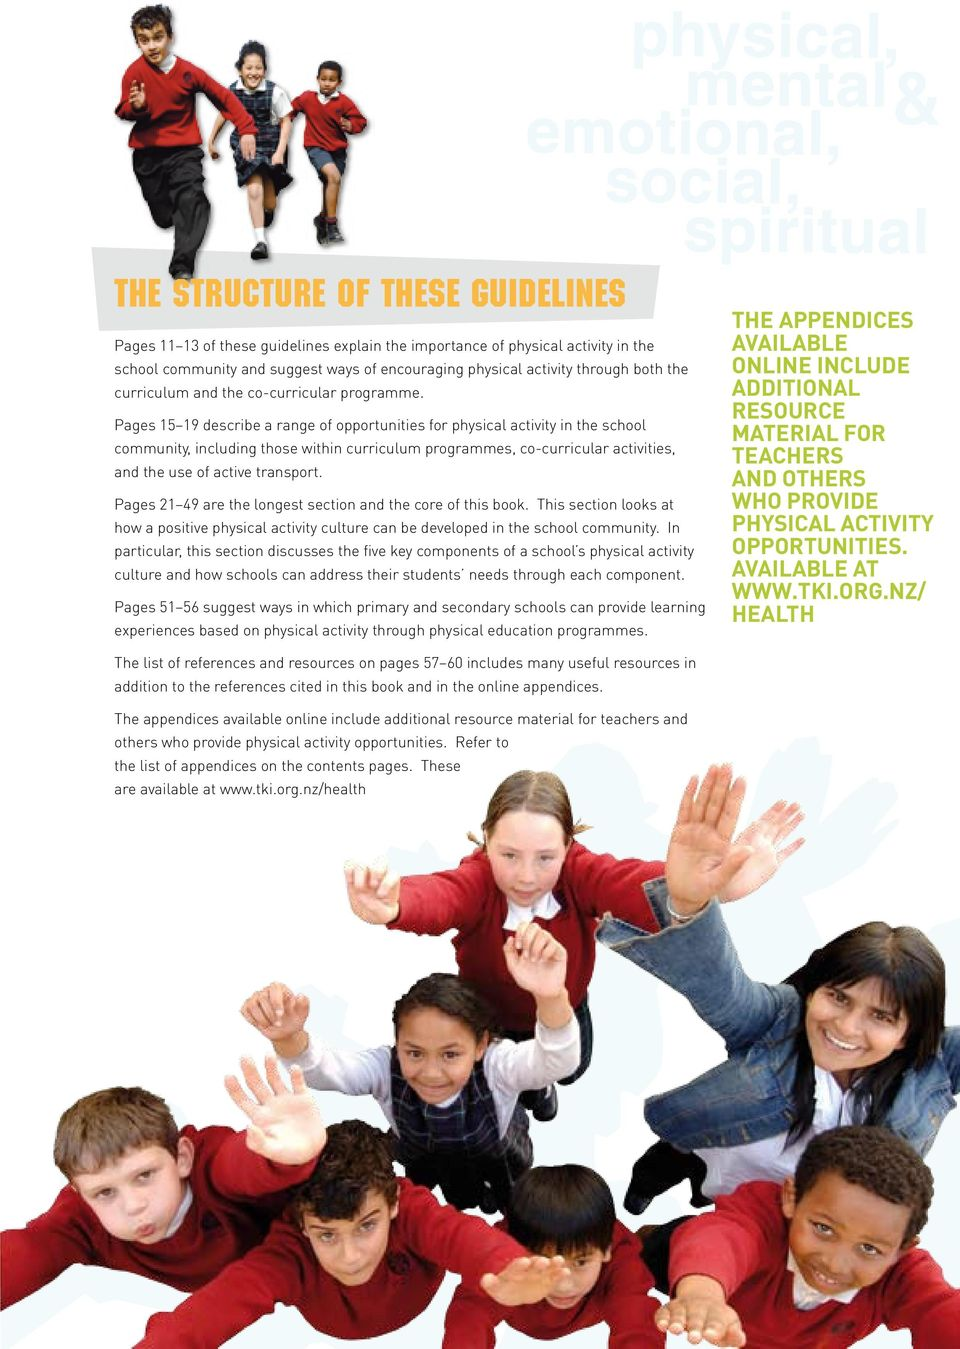 Pages 15 19 describe a range of opportunities for physical activity in the school community, including those within curriculum programmes, co-curricular activities, and the use of active transport.